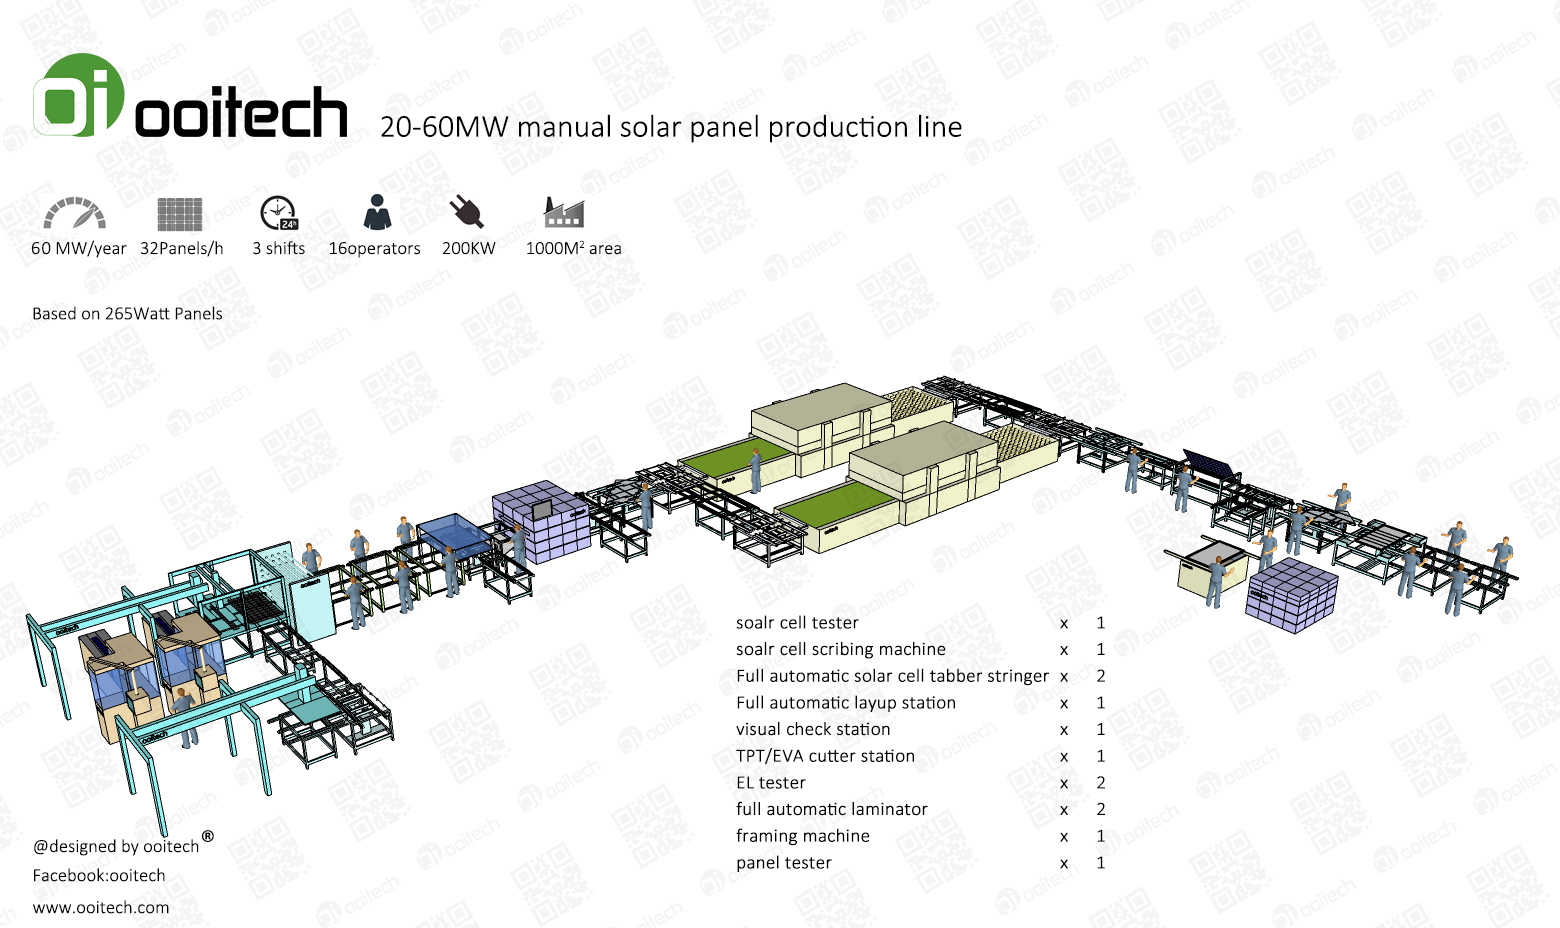 solar panel production line, solar panel manufacturing equipment, solar panel manufacturing plant cost, solar panel production line cost,solar panel manufacturing equipment for sale